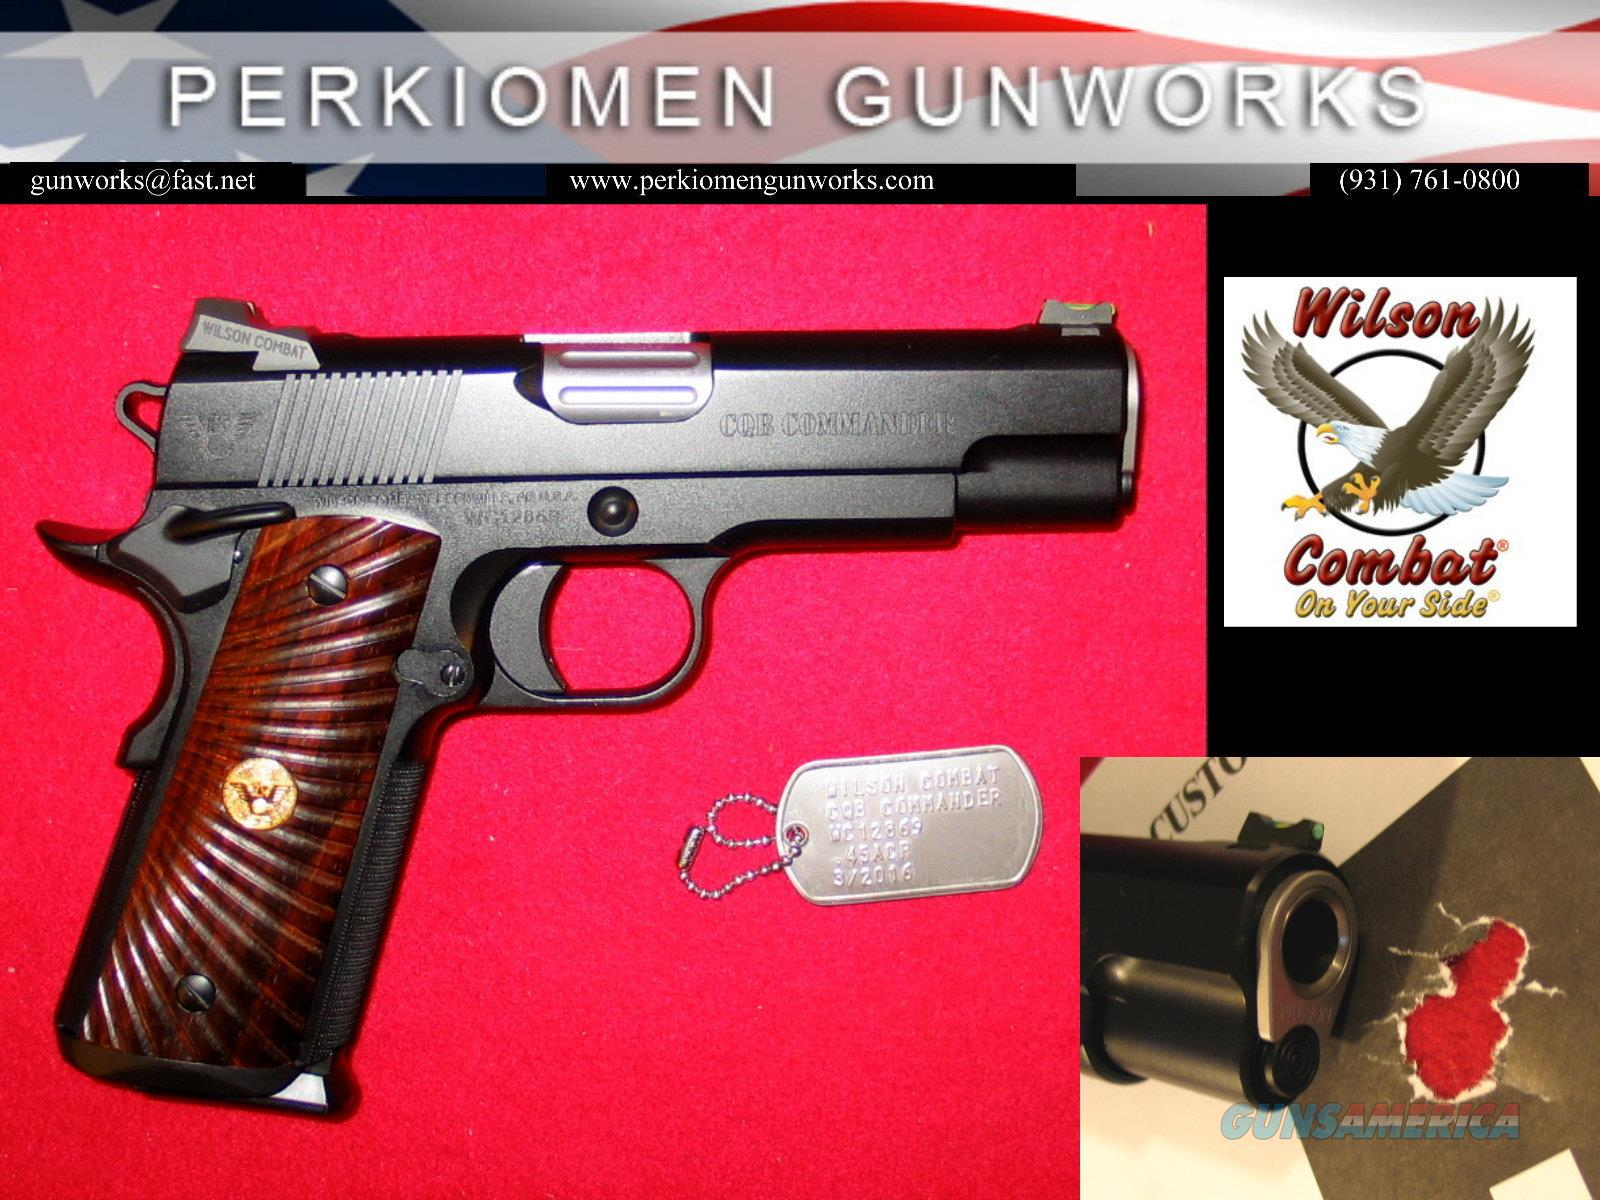 CQB Commander Armor-Tuff .45acp with Upgrades, New in case.  Guns > Pistols > Wilson Combat Pistols